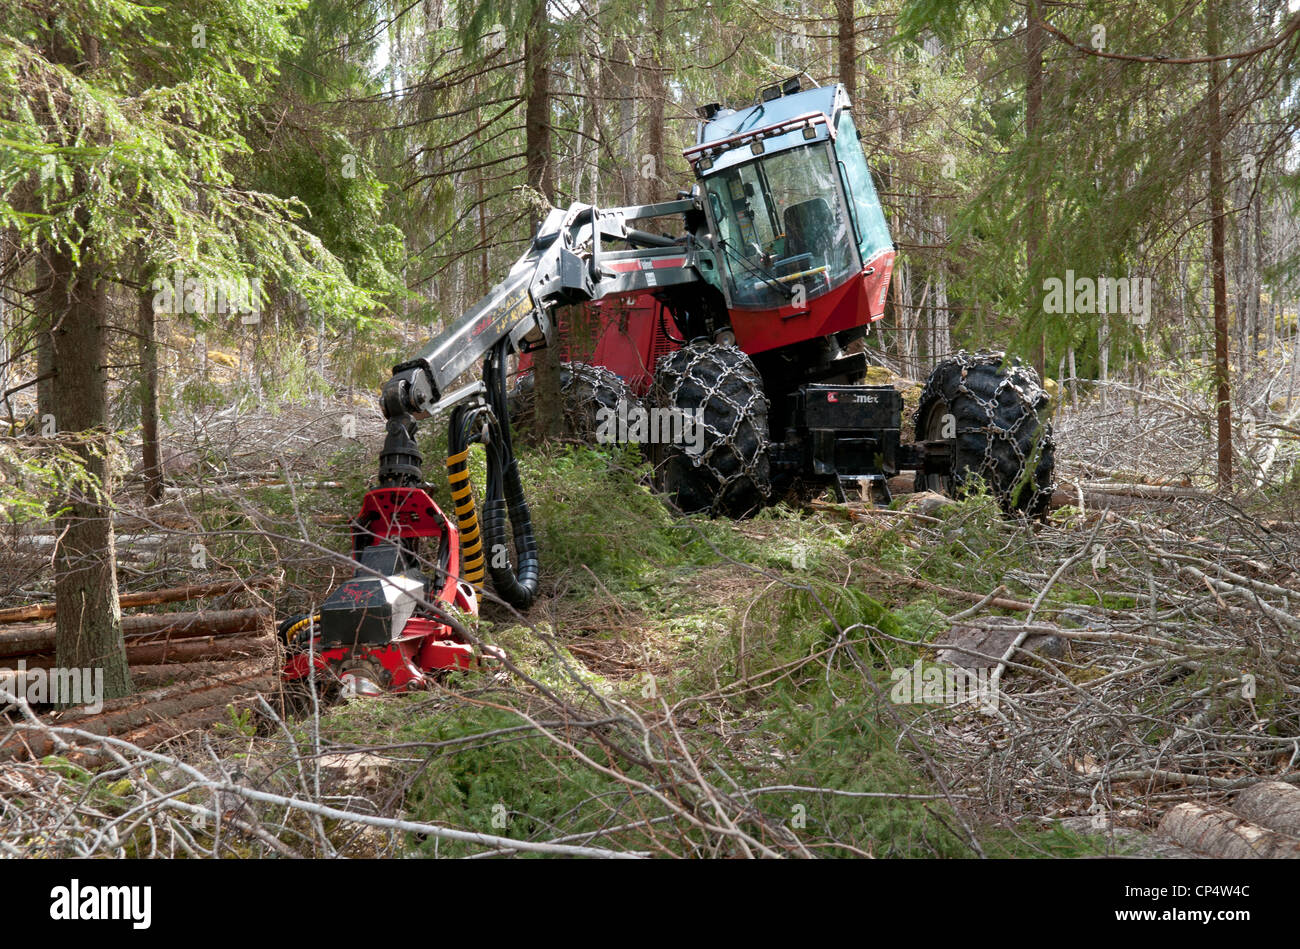 A Valmet tree chopper in the woods - Stock Image